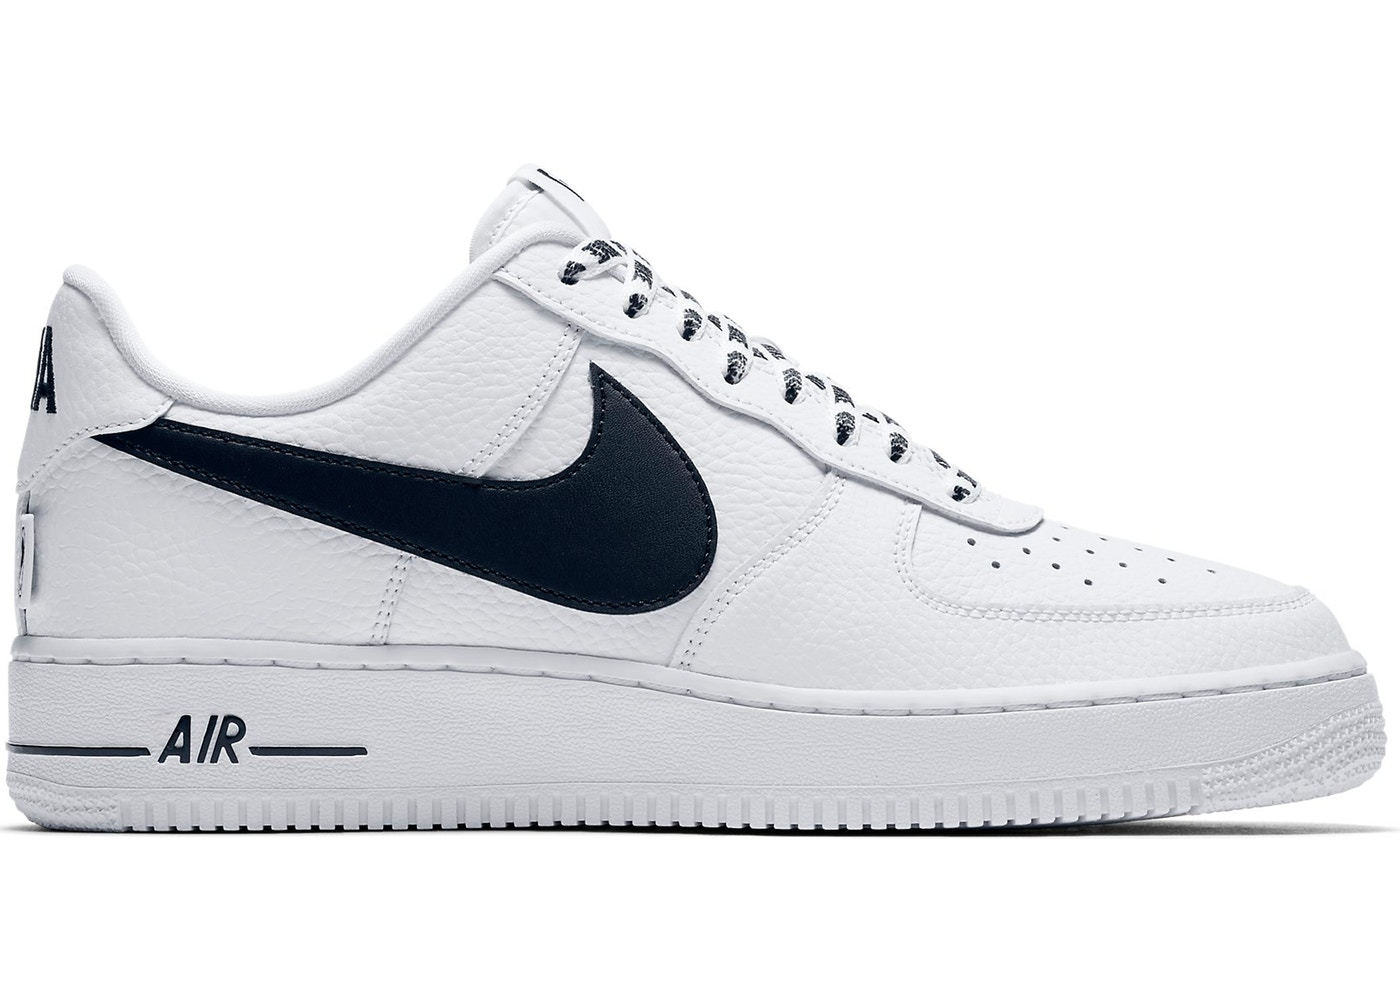 sale retailer 72abd 8d764 Air Force 1 Low NBA White Black